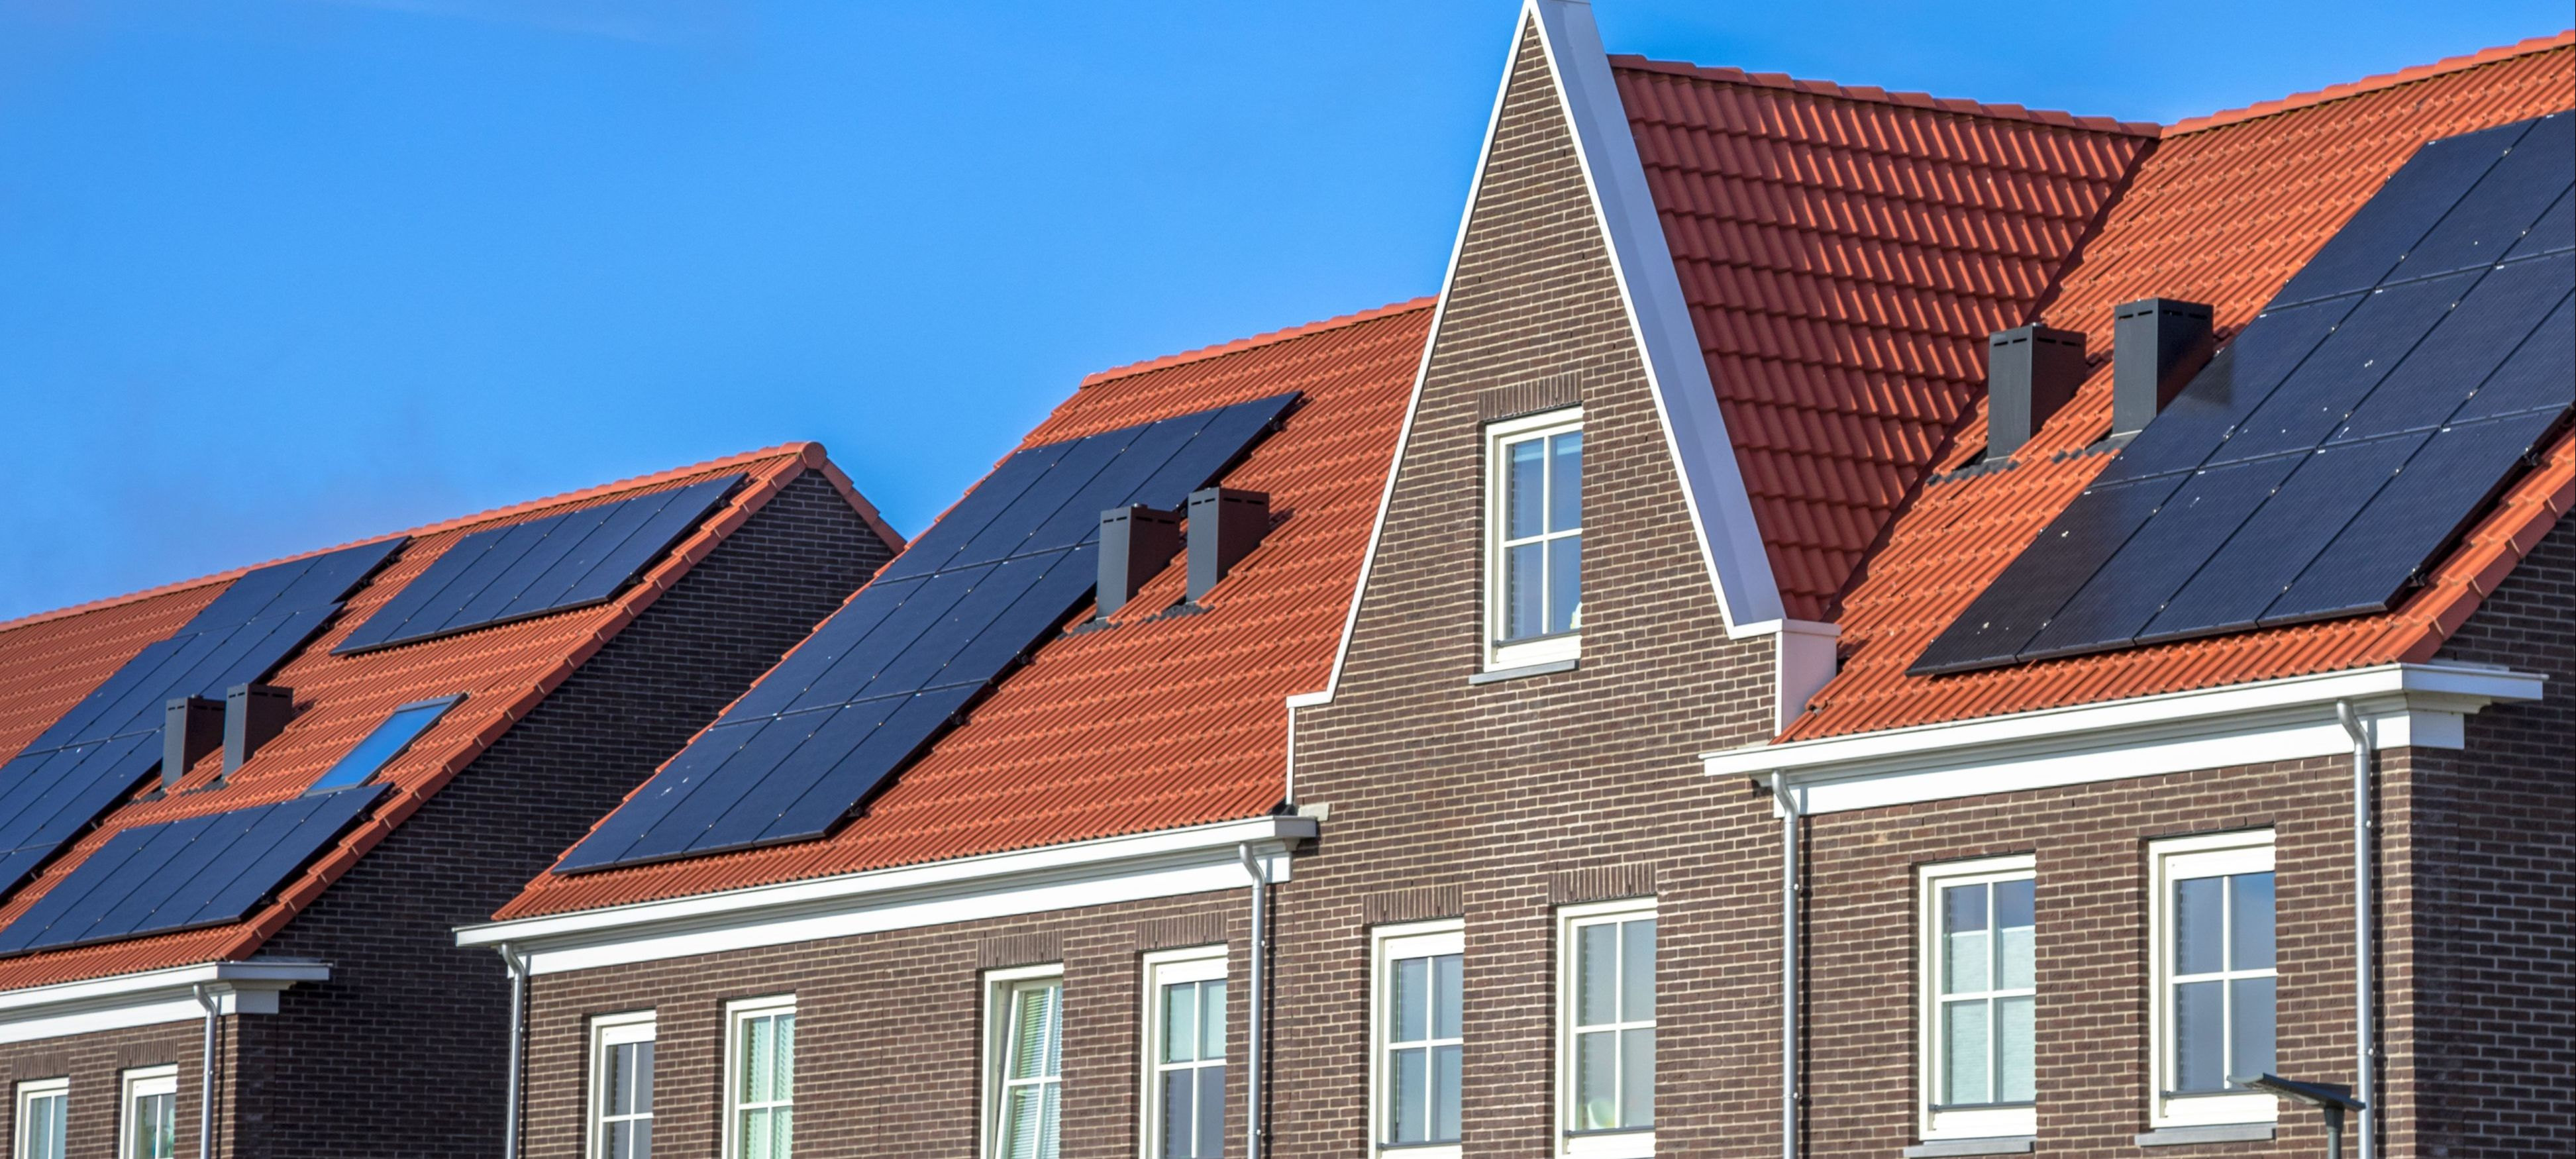 close-up-of-modern-row-houses-with-solar-panels-P72ZCRD.jpg